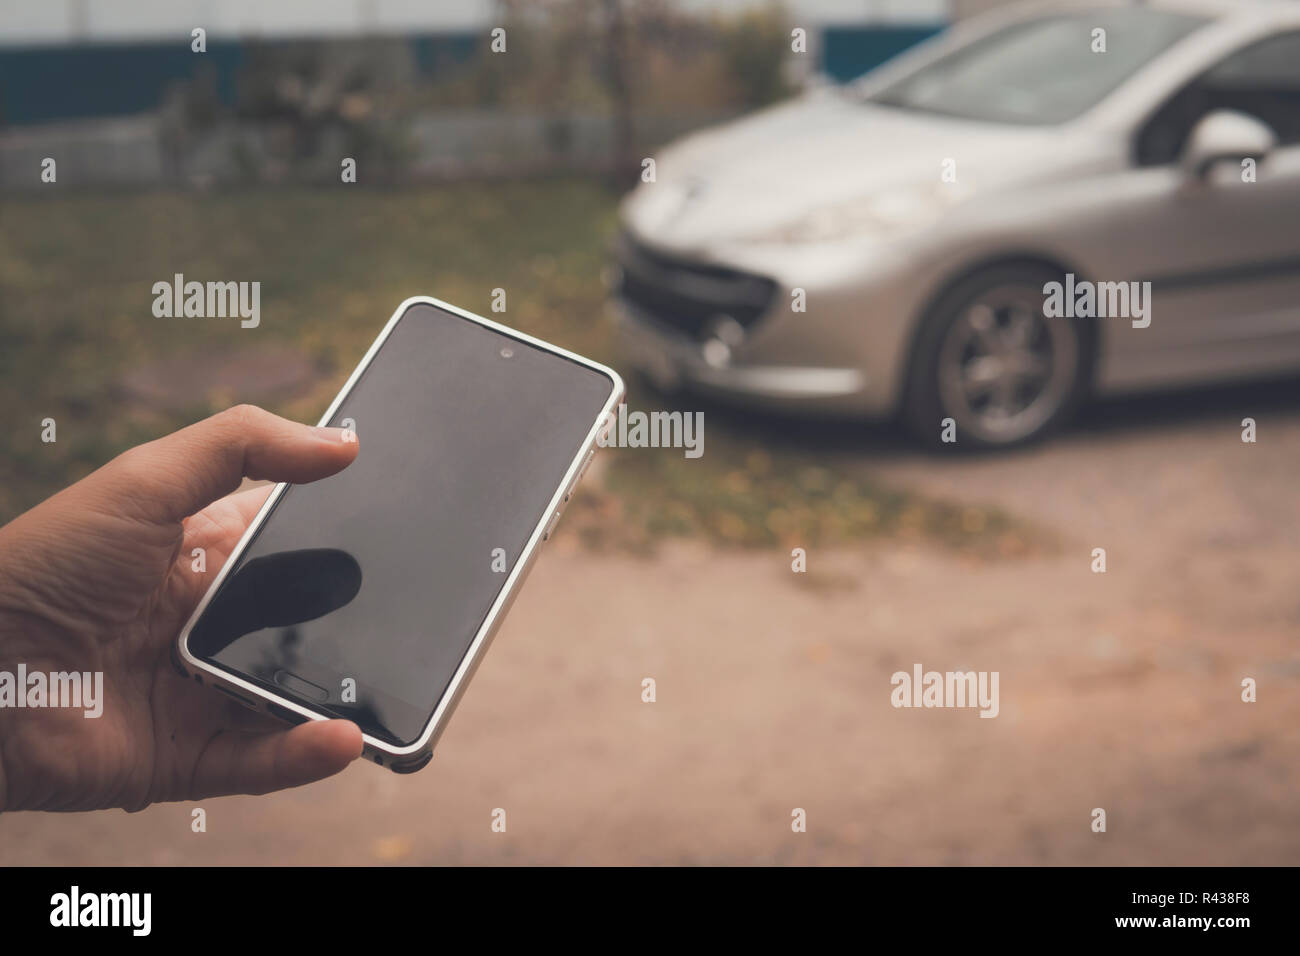 Person connects with smart car by phone application. Mobile app controls the work of a vehicle computer. Keyless car unlock by using cellphone. Vehicl - Stock Image